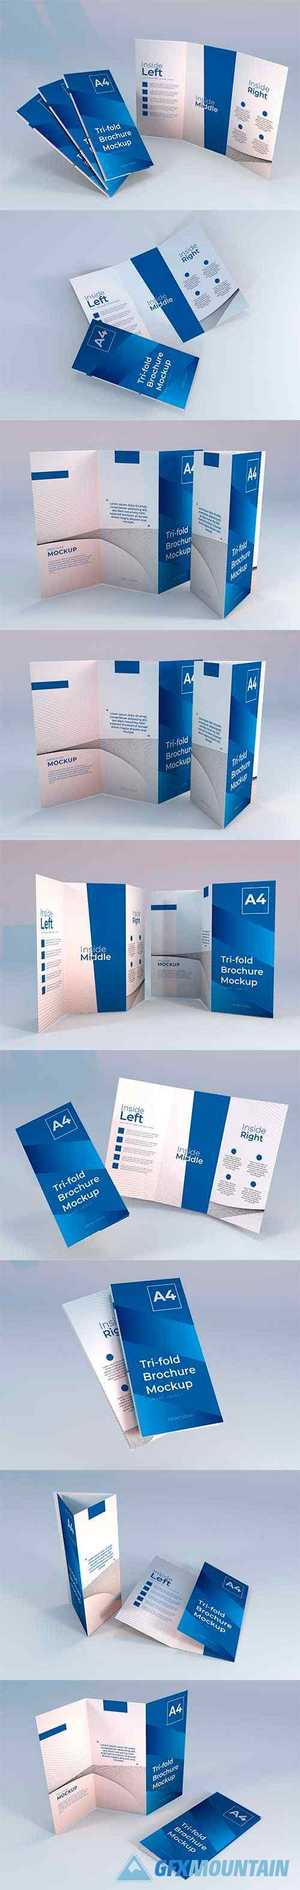 Realistic a4 trifold brochure mockup